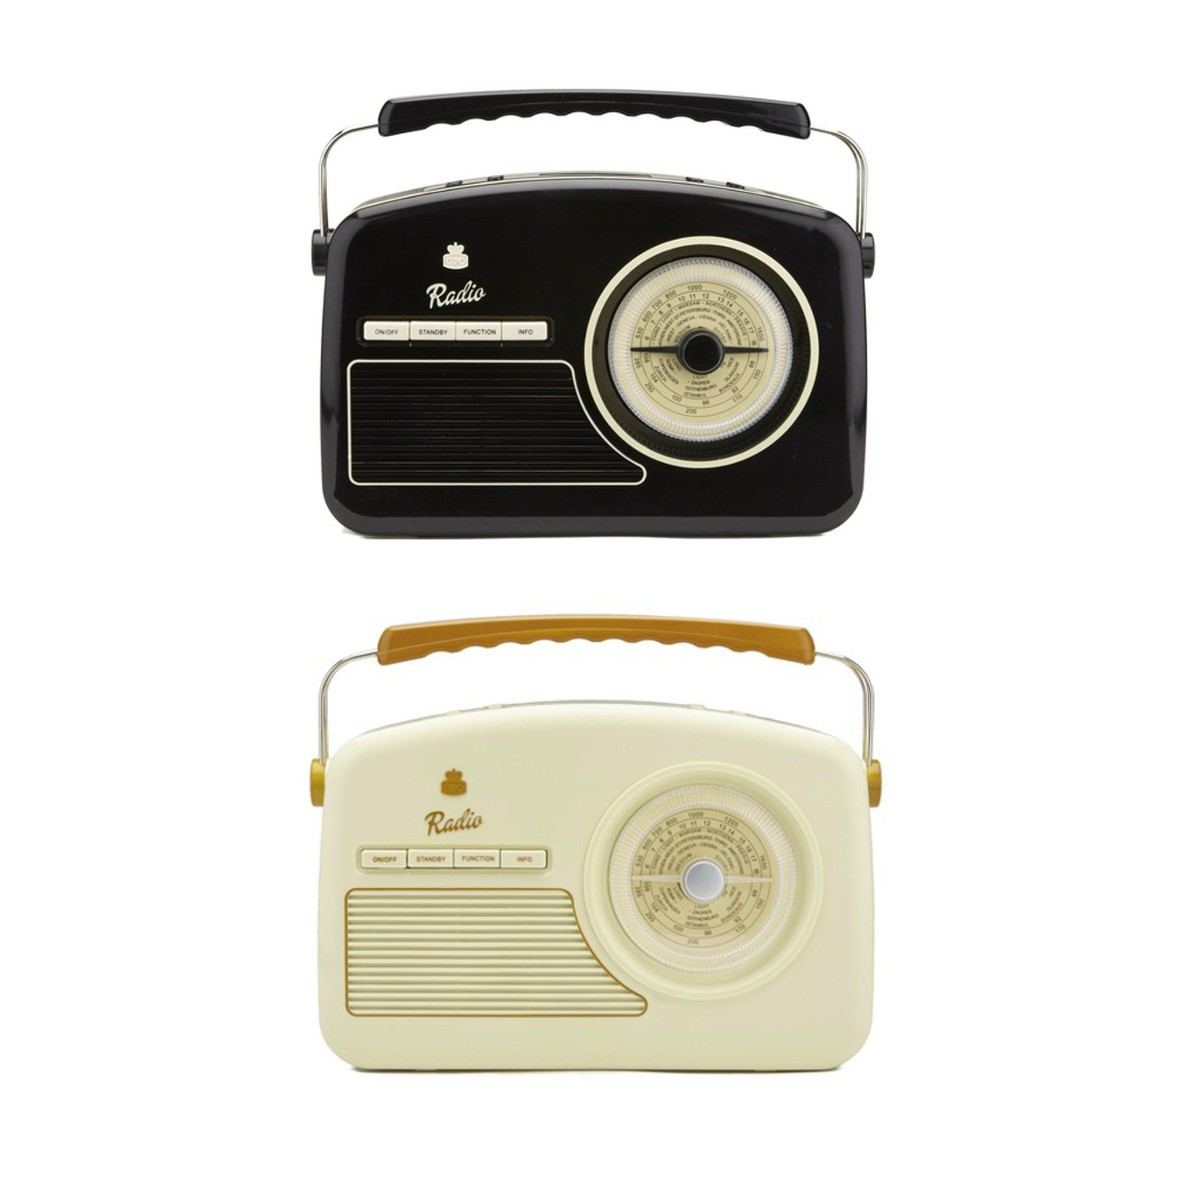 Trendy 50's DAB + Radio